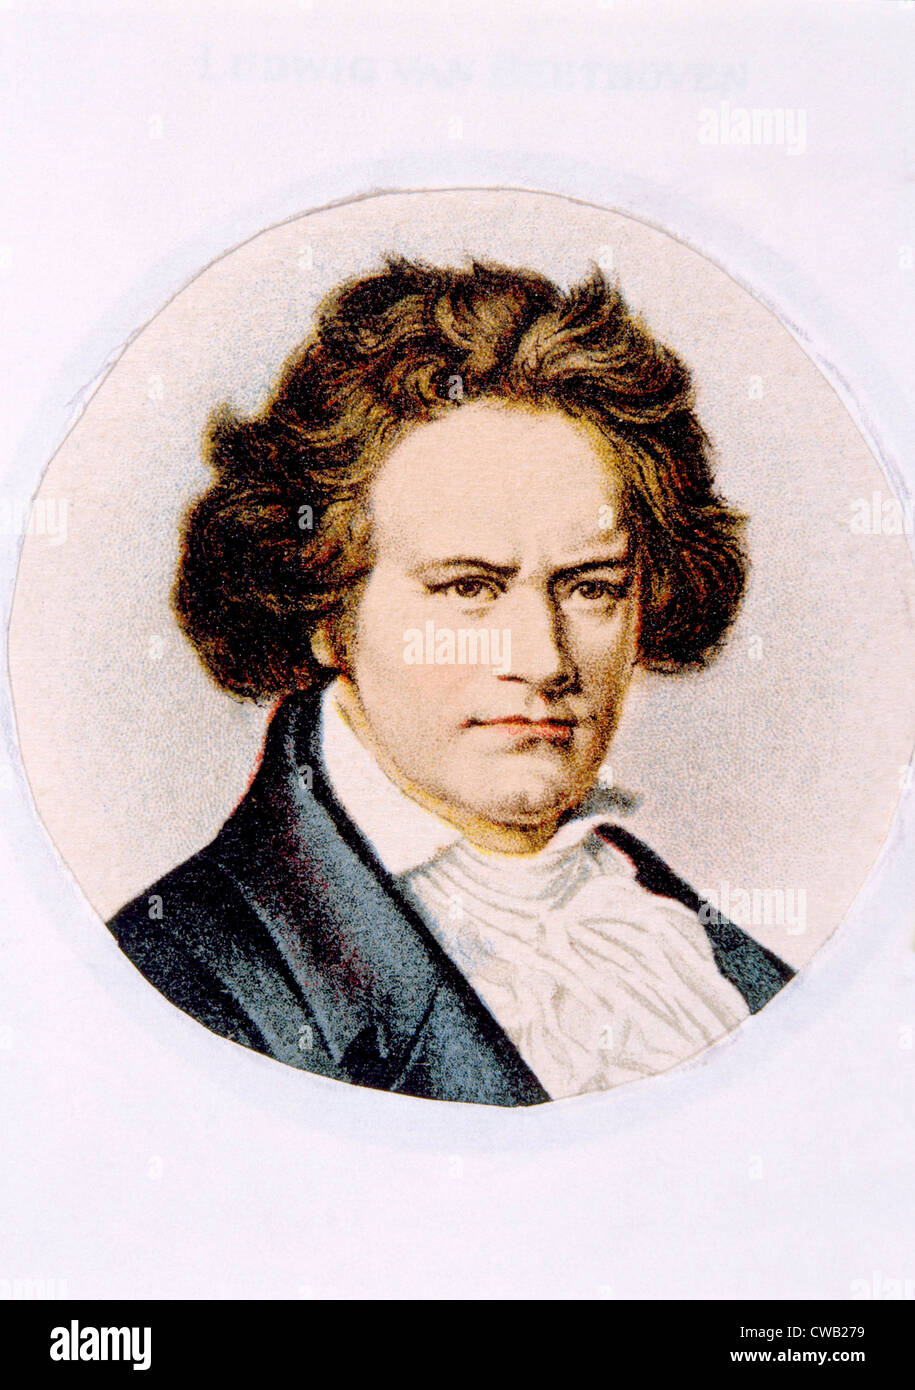 Ludwig van Beethoven (1770-1827) Stock Photo